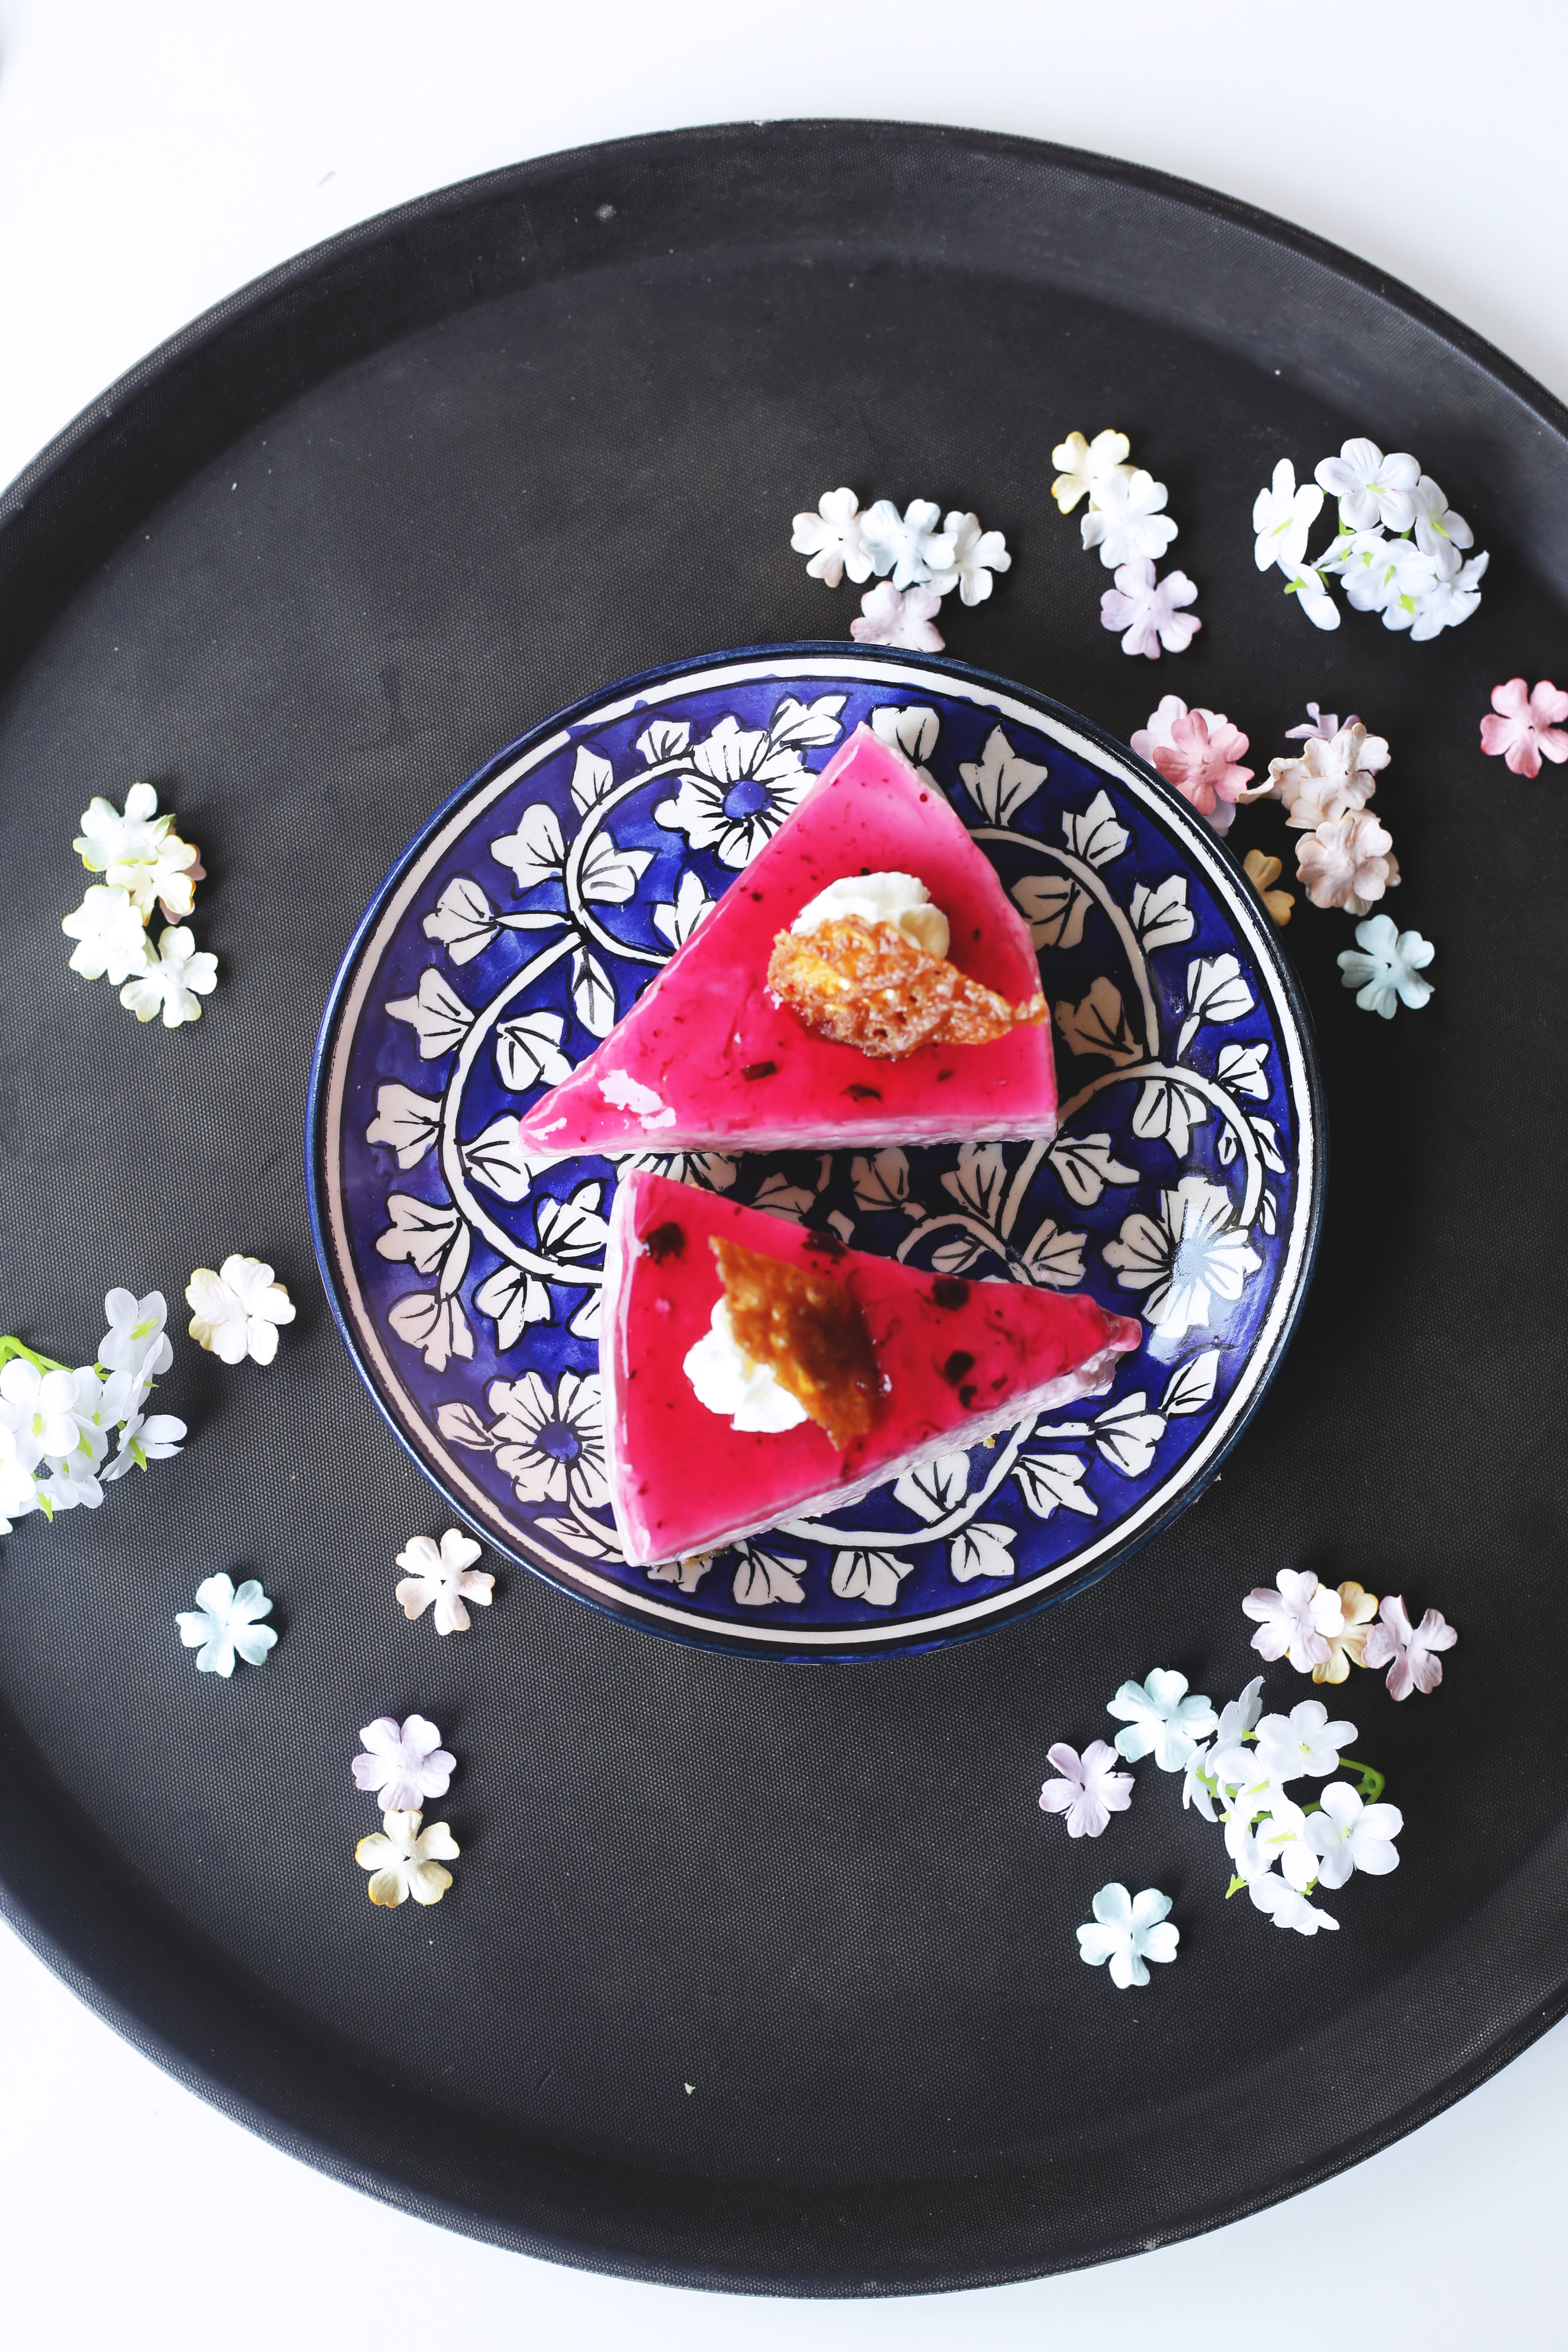 Sliced Strawberry Cake on Plate With Black Tray